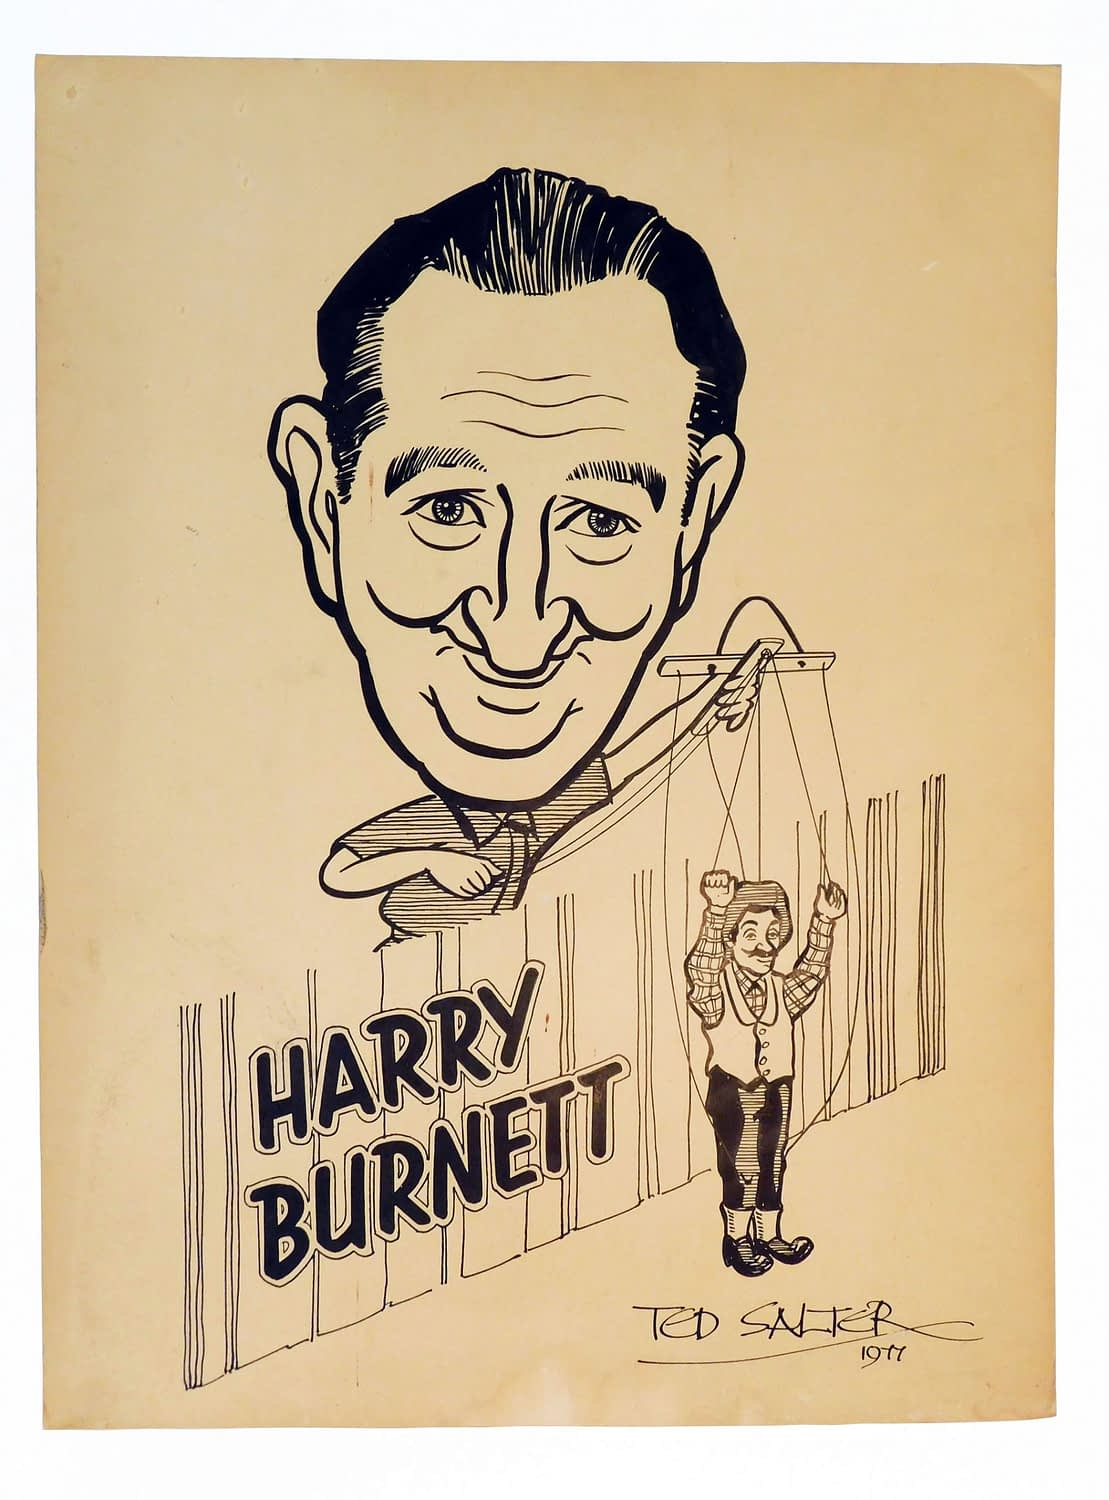 Artwork of Harry Burnett with Uncle Tom's Hebb'n puppet signed by artist, Ted Slater